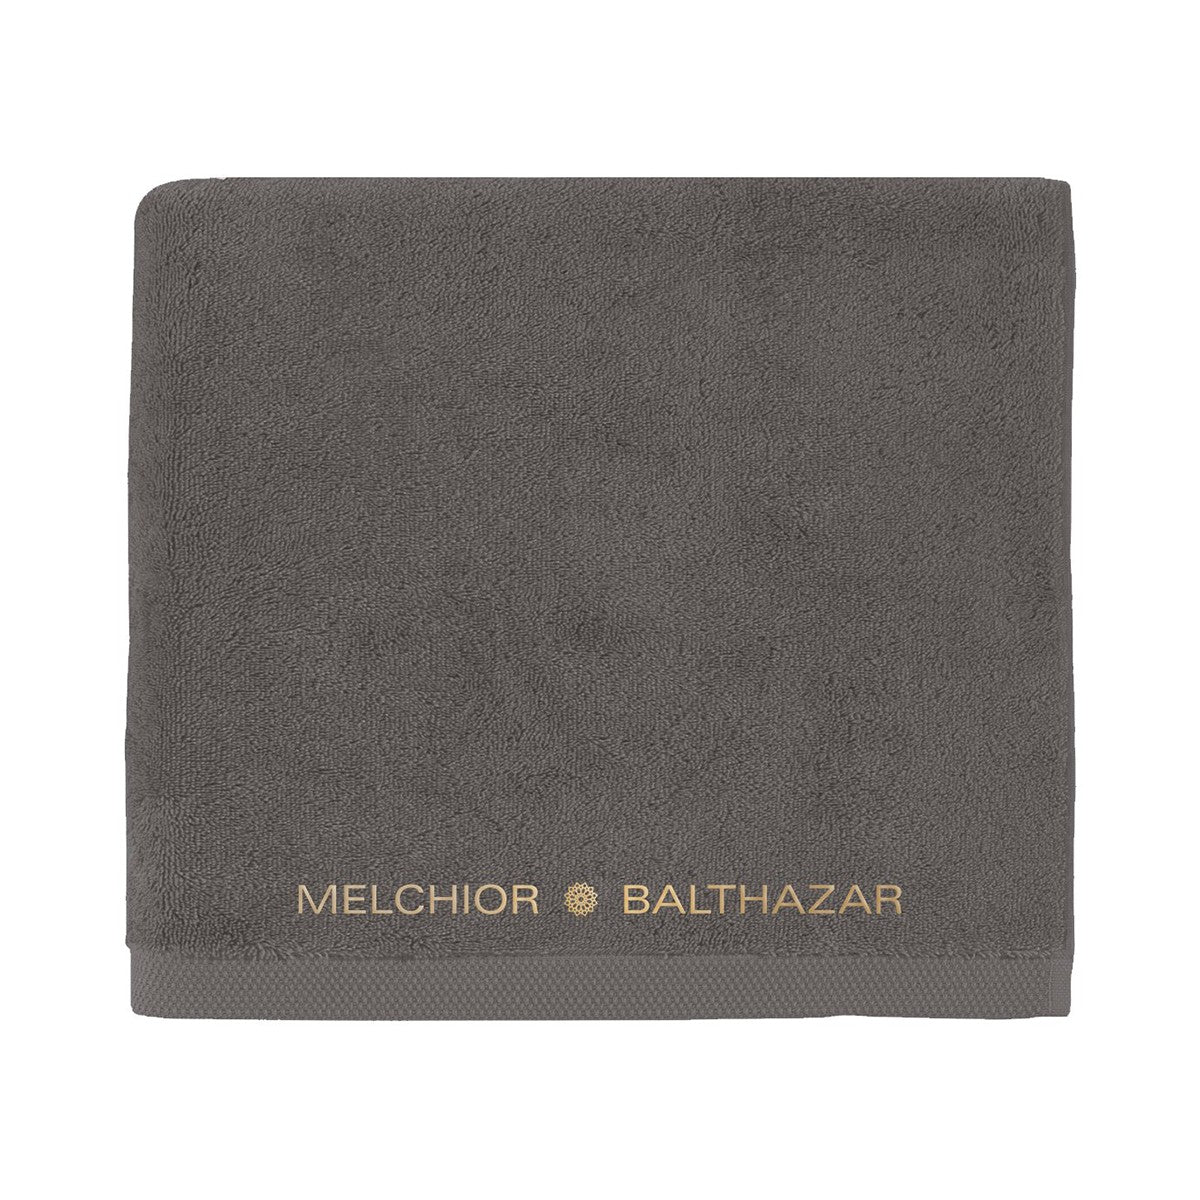 Melchior & Balthazar embroidered bath towel